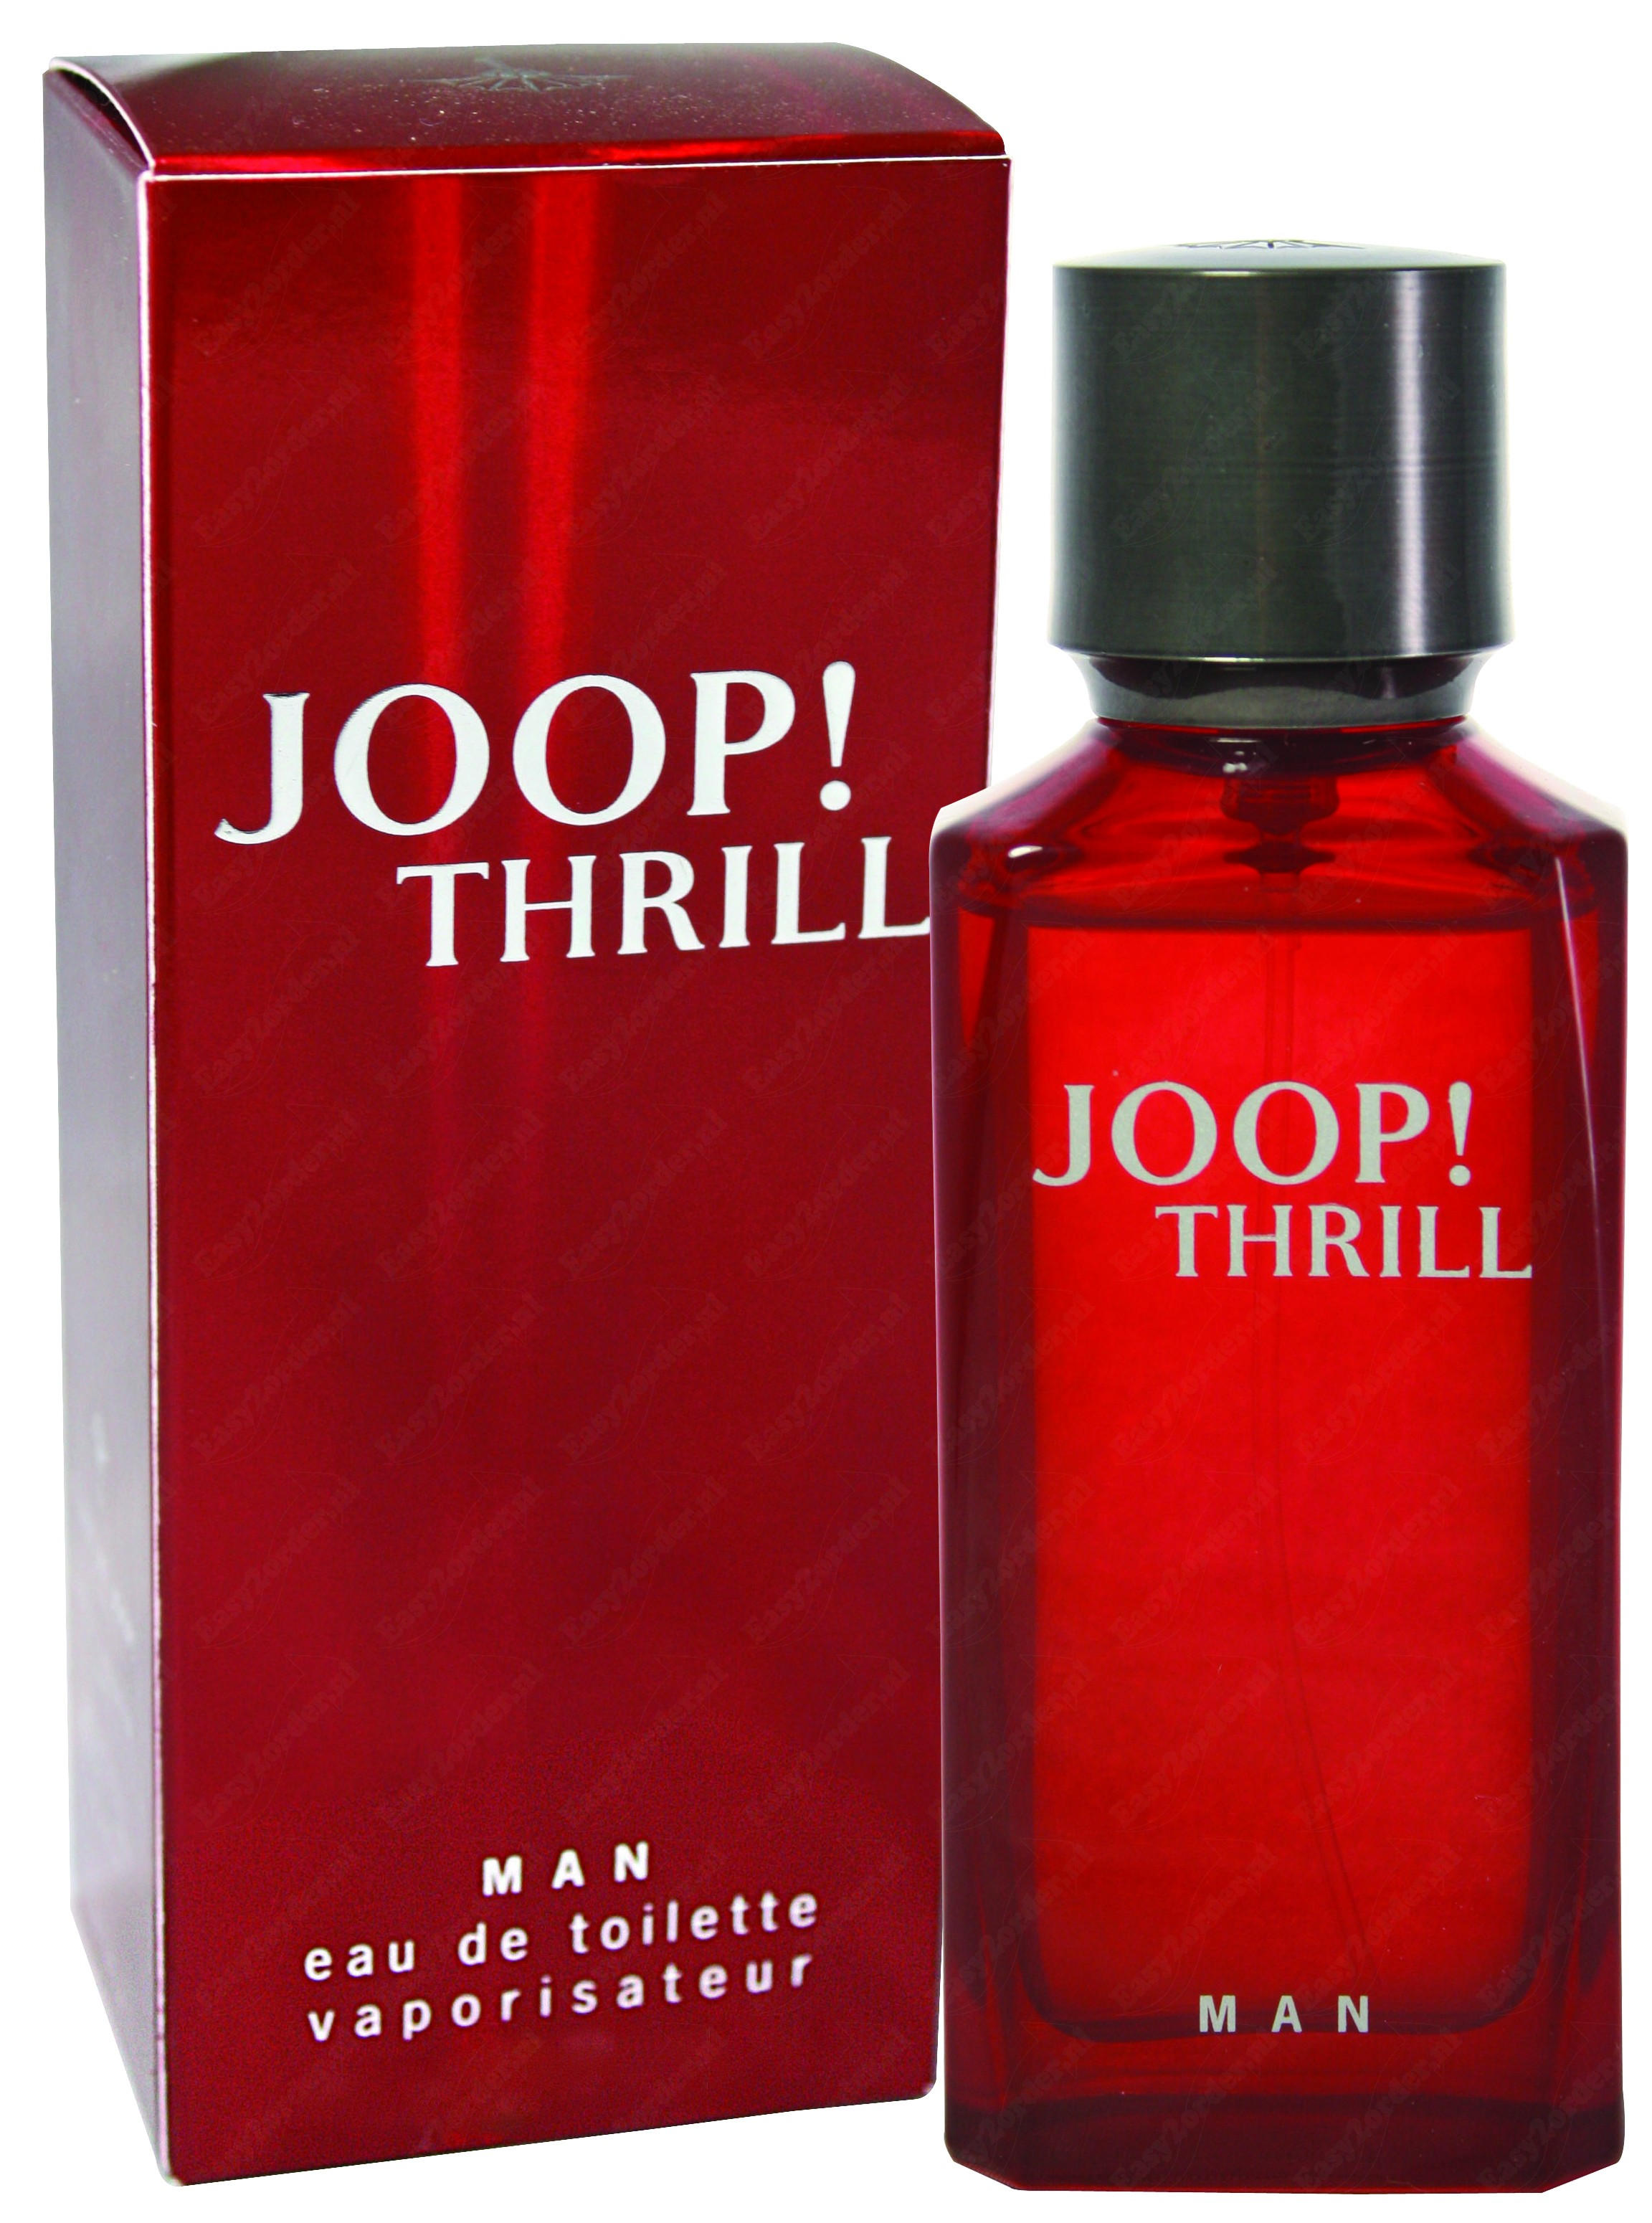 Joop Thrill Man Eau de toilette 30ml